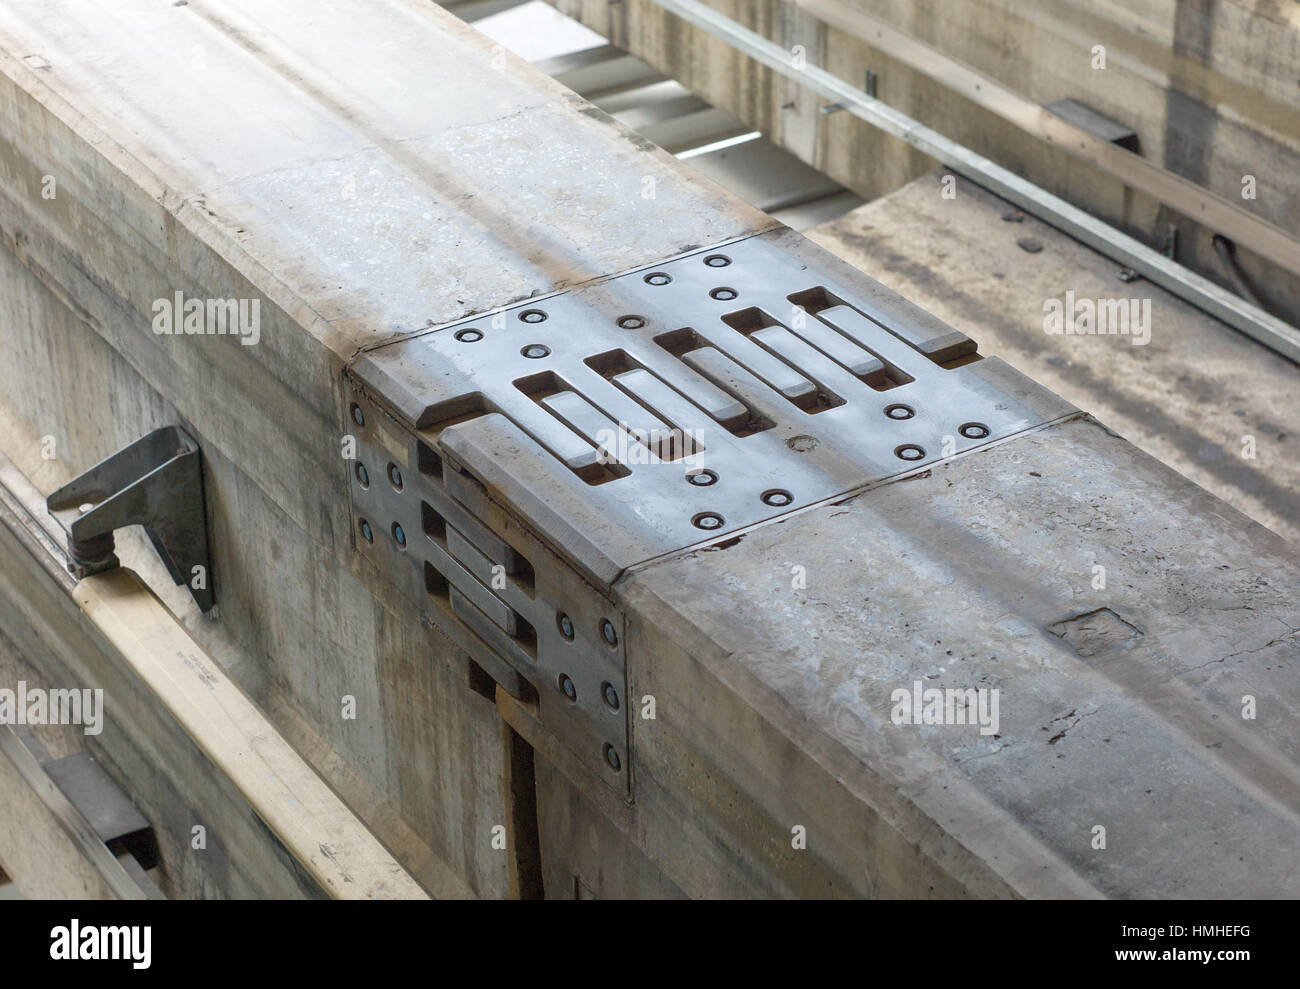 Dehnungsfuge Beton Steel Plate Expansion Joint In Concrete Monorail Track